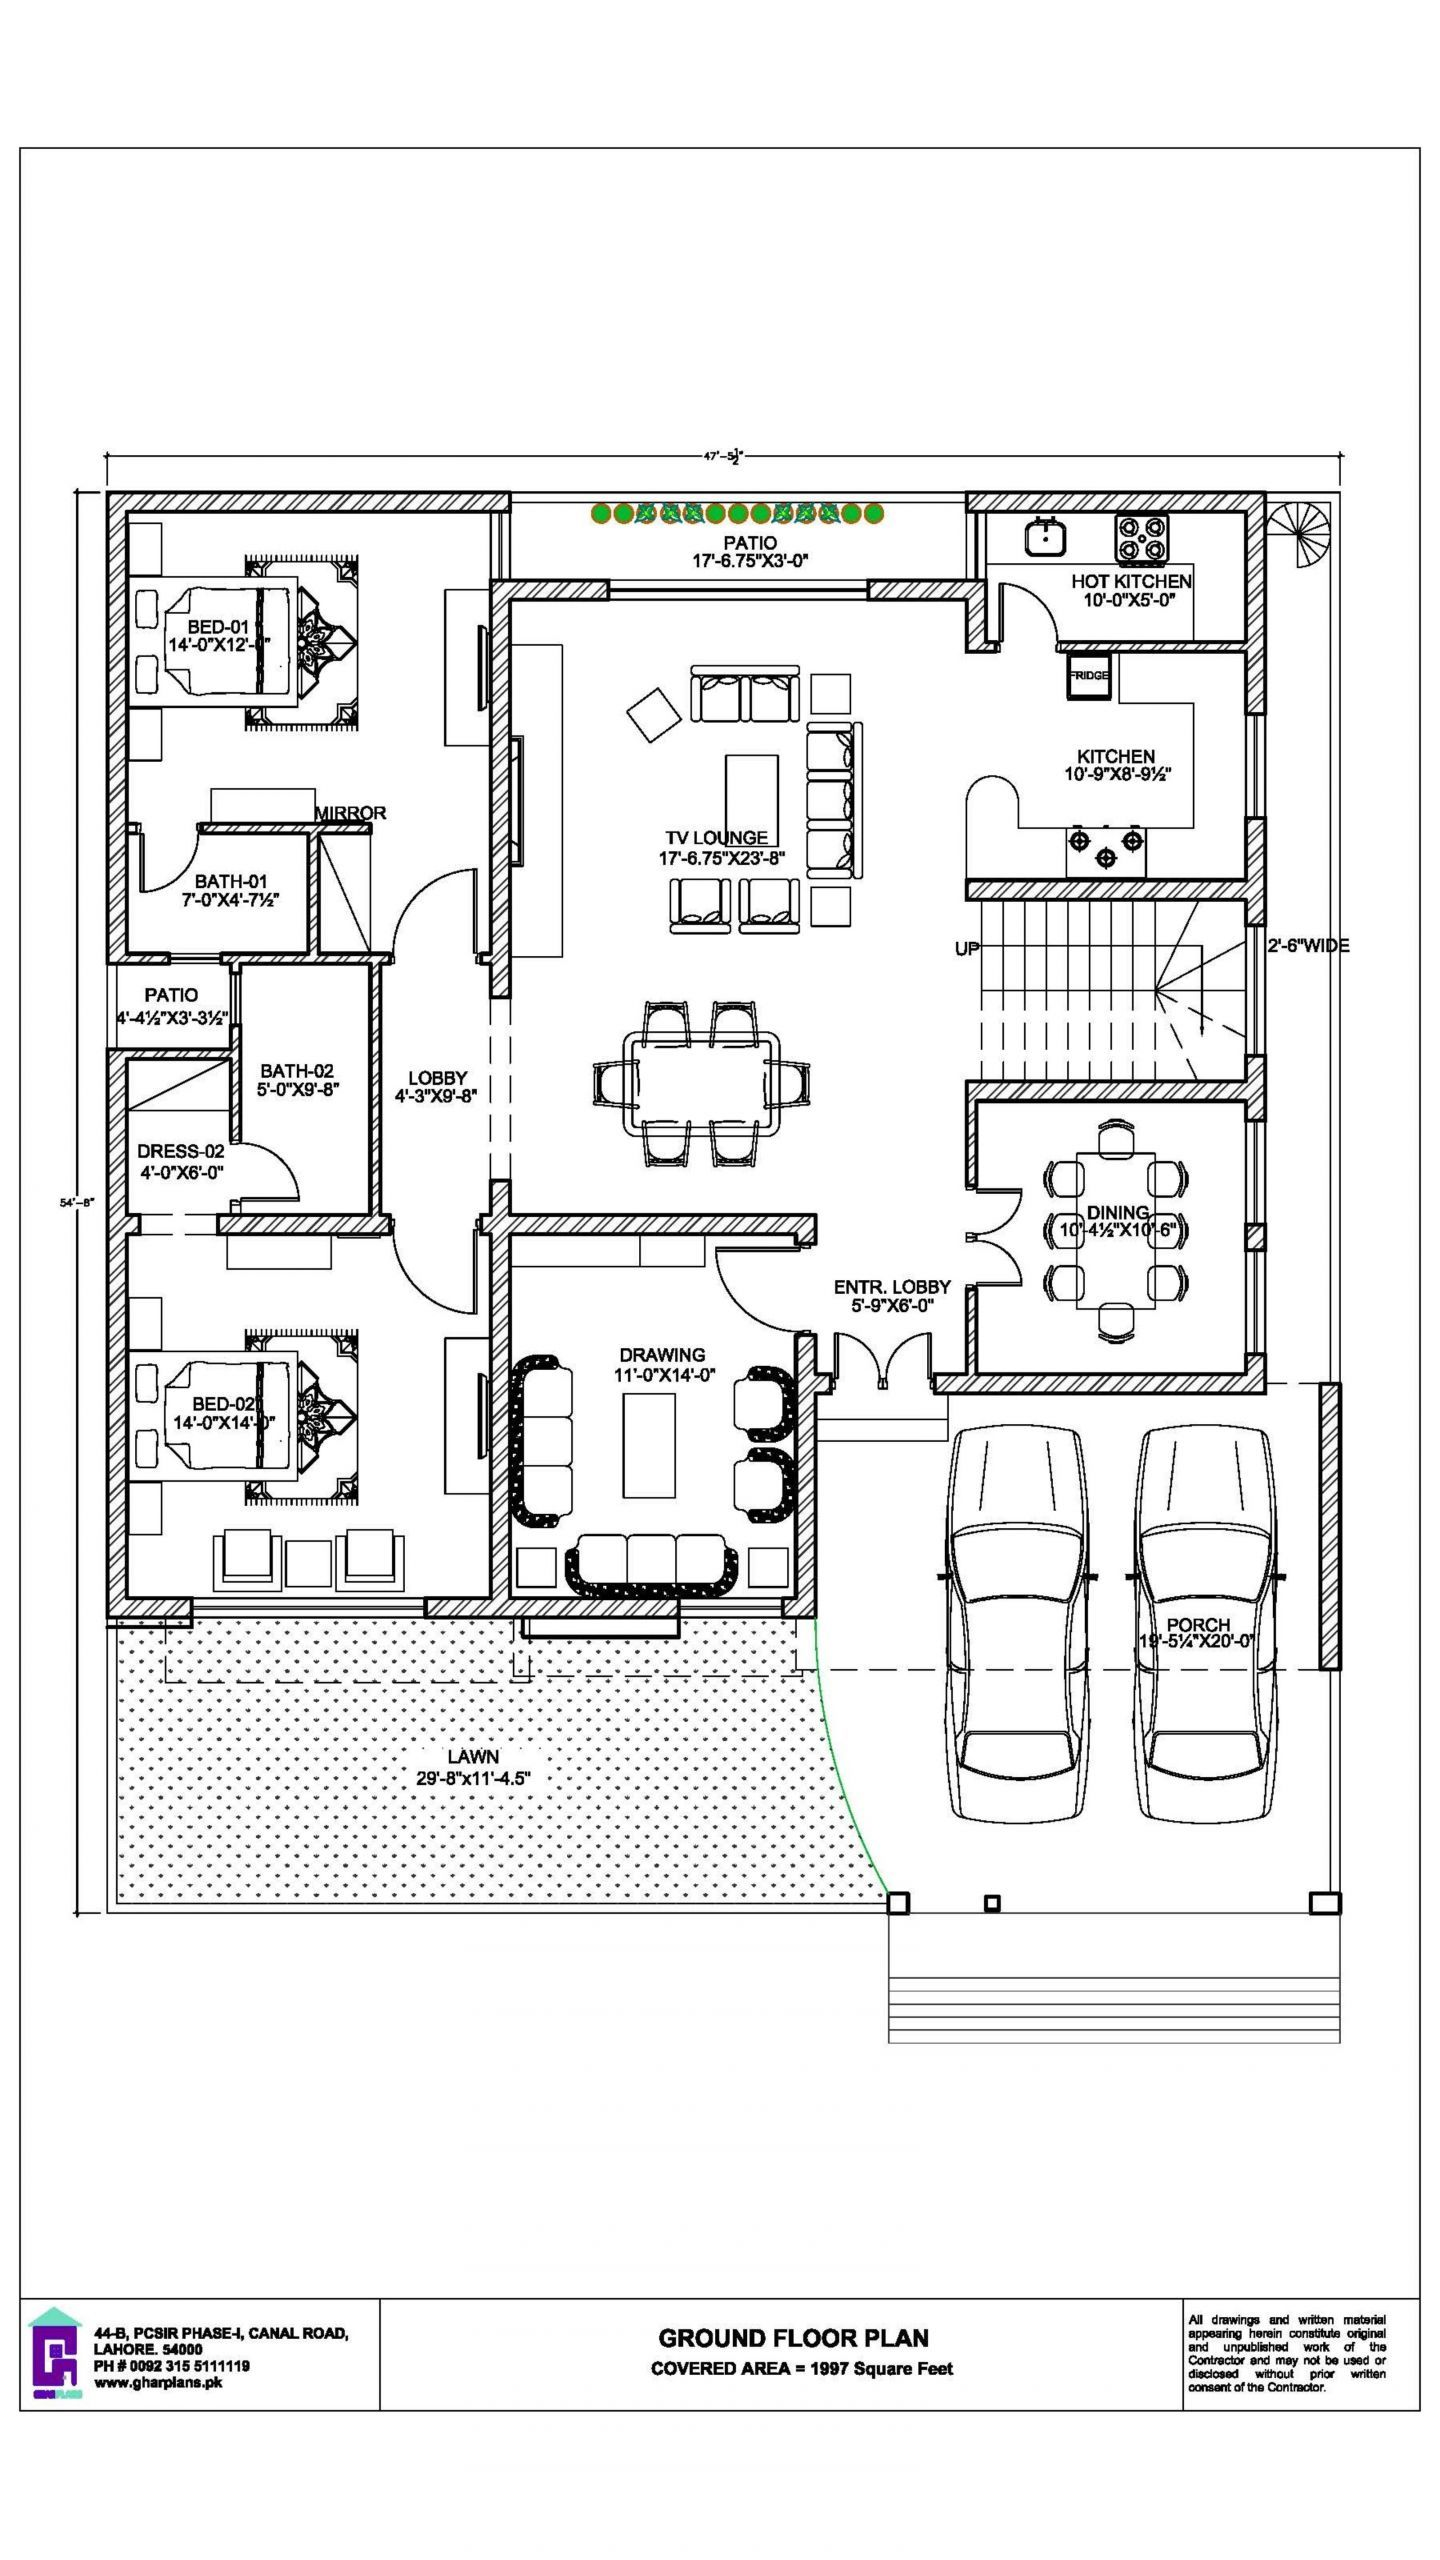 New Design Your Own House Plans Online Free House Floor Design House Plans Online Home Design Plans